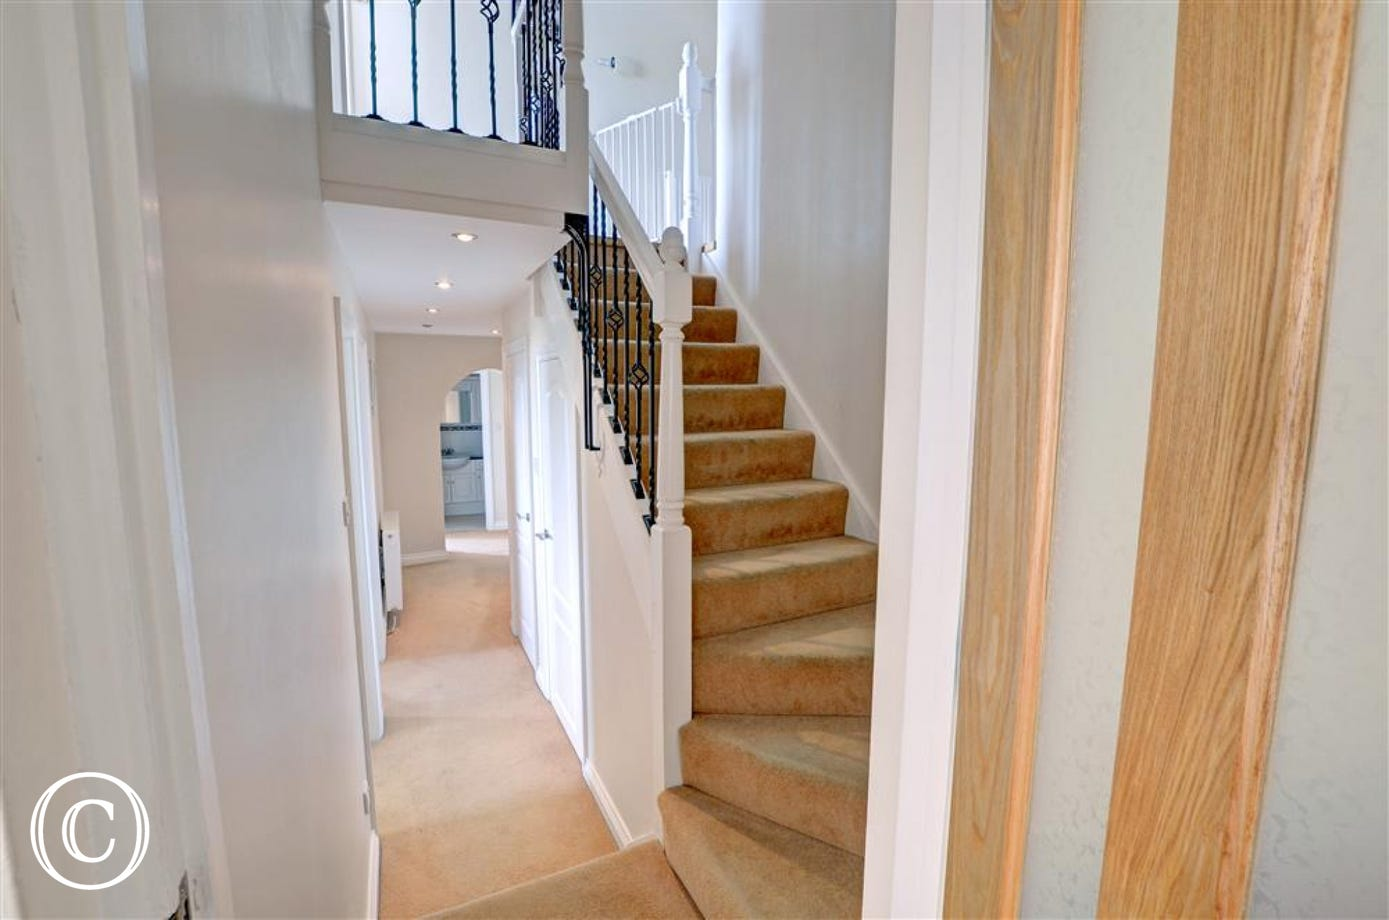 The staircase leads to the 4 downstairs bedrooms